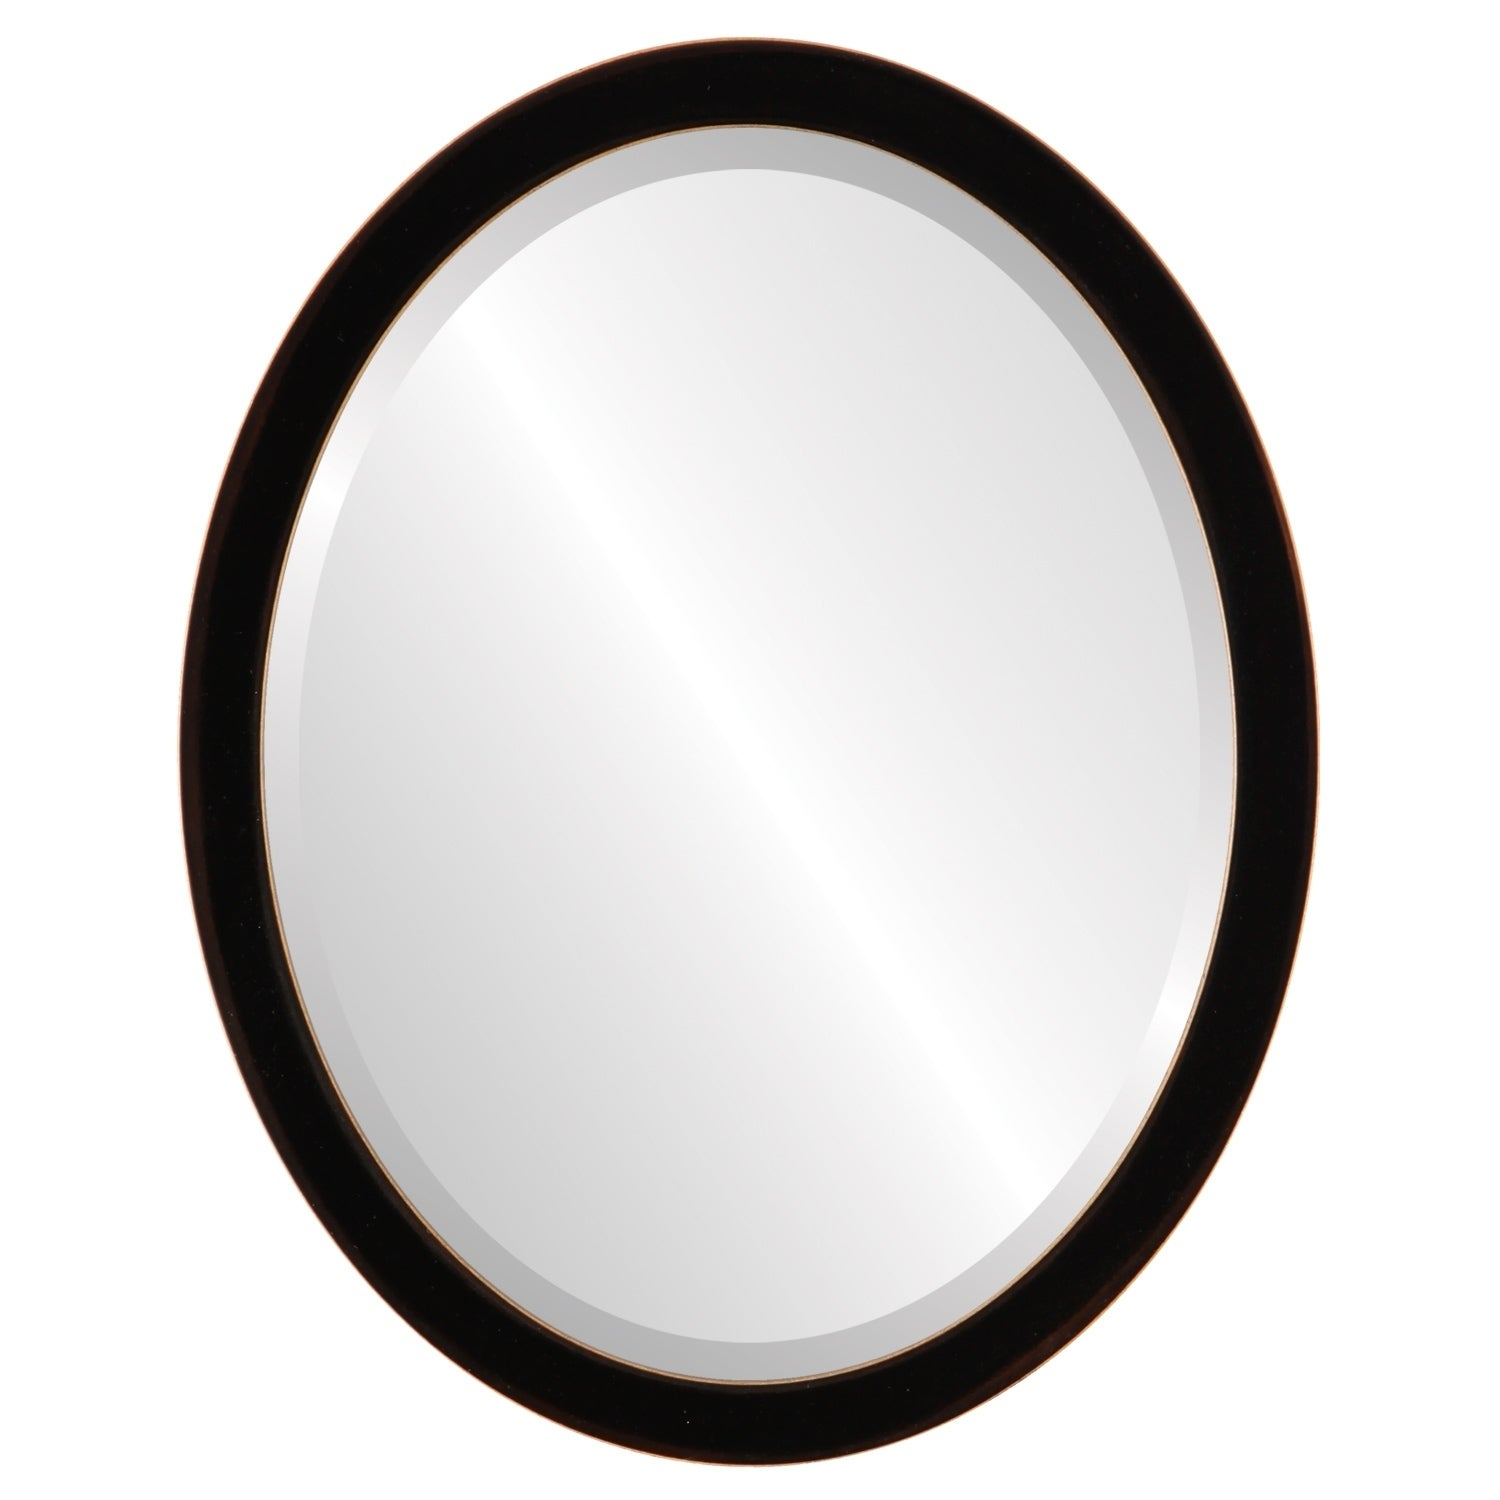 Shop Manhattan Framed Oval Mirror in Rubbed Black - Free Shipping ...